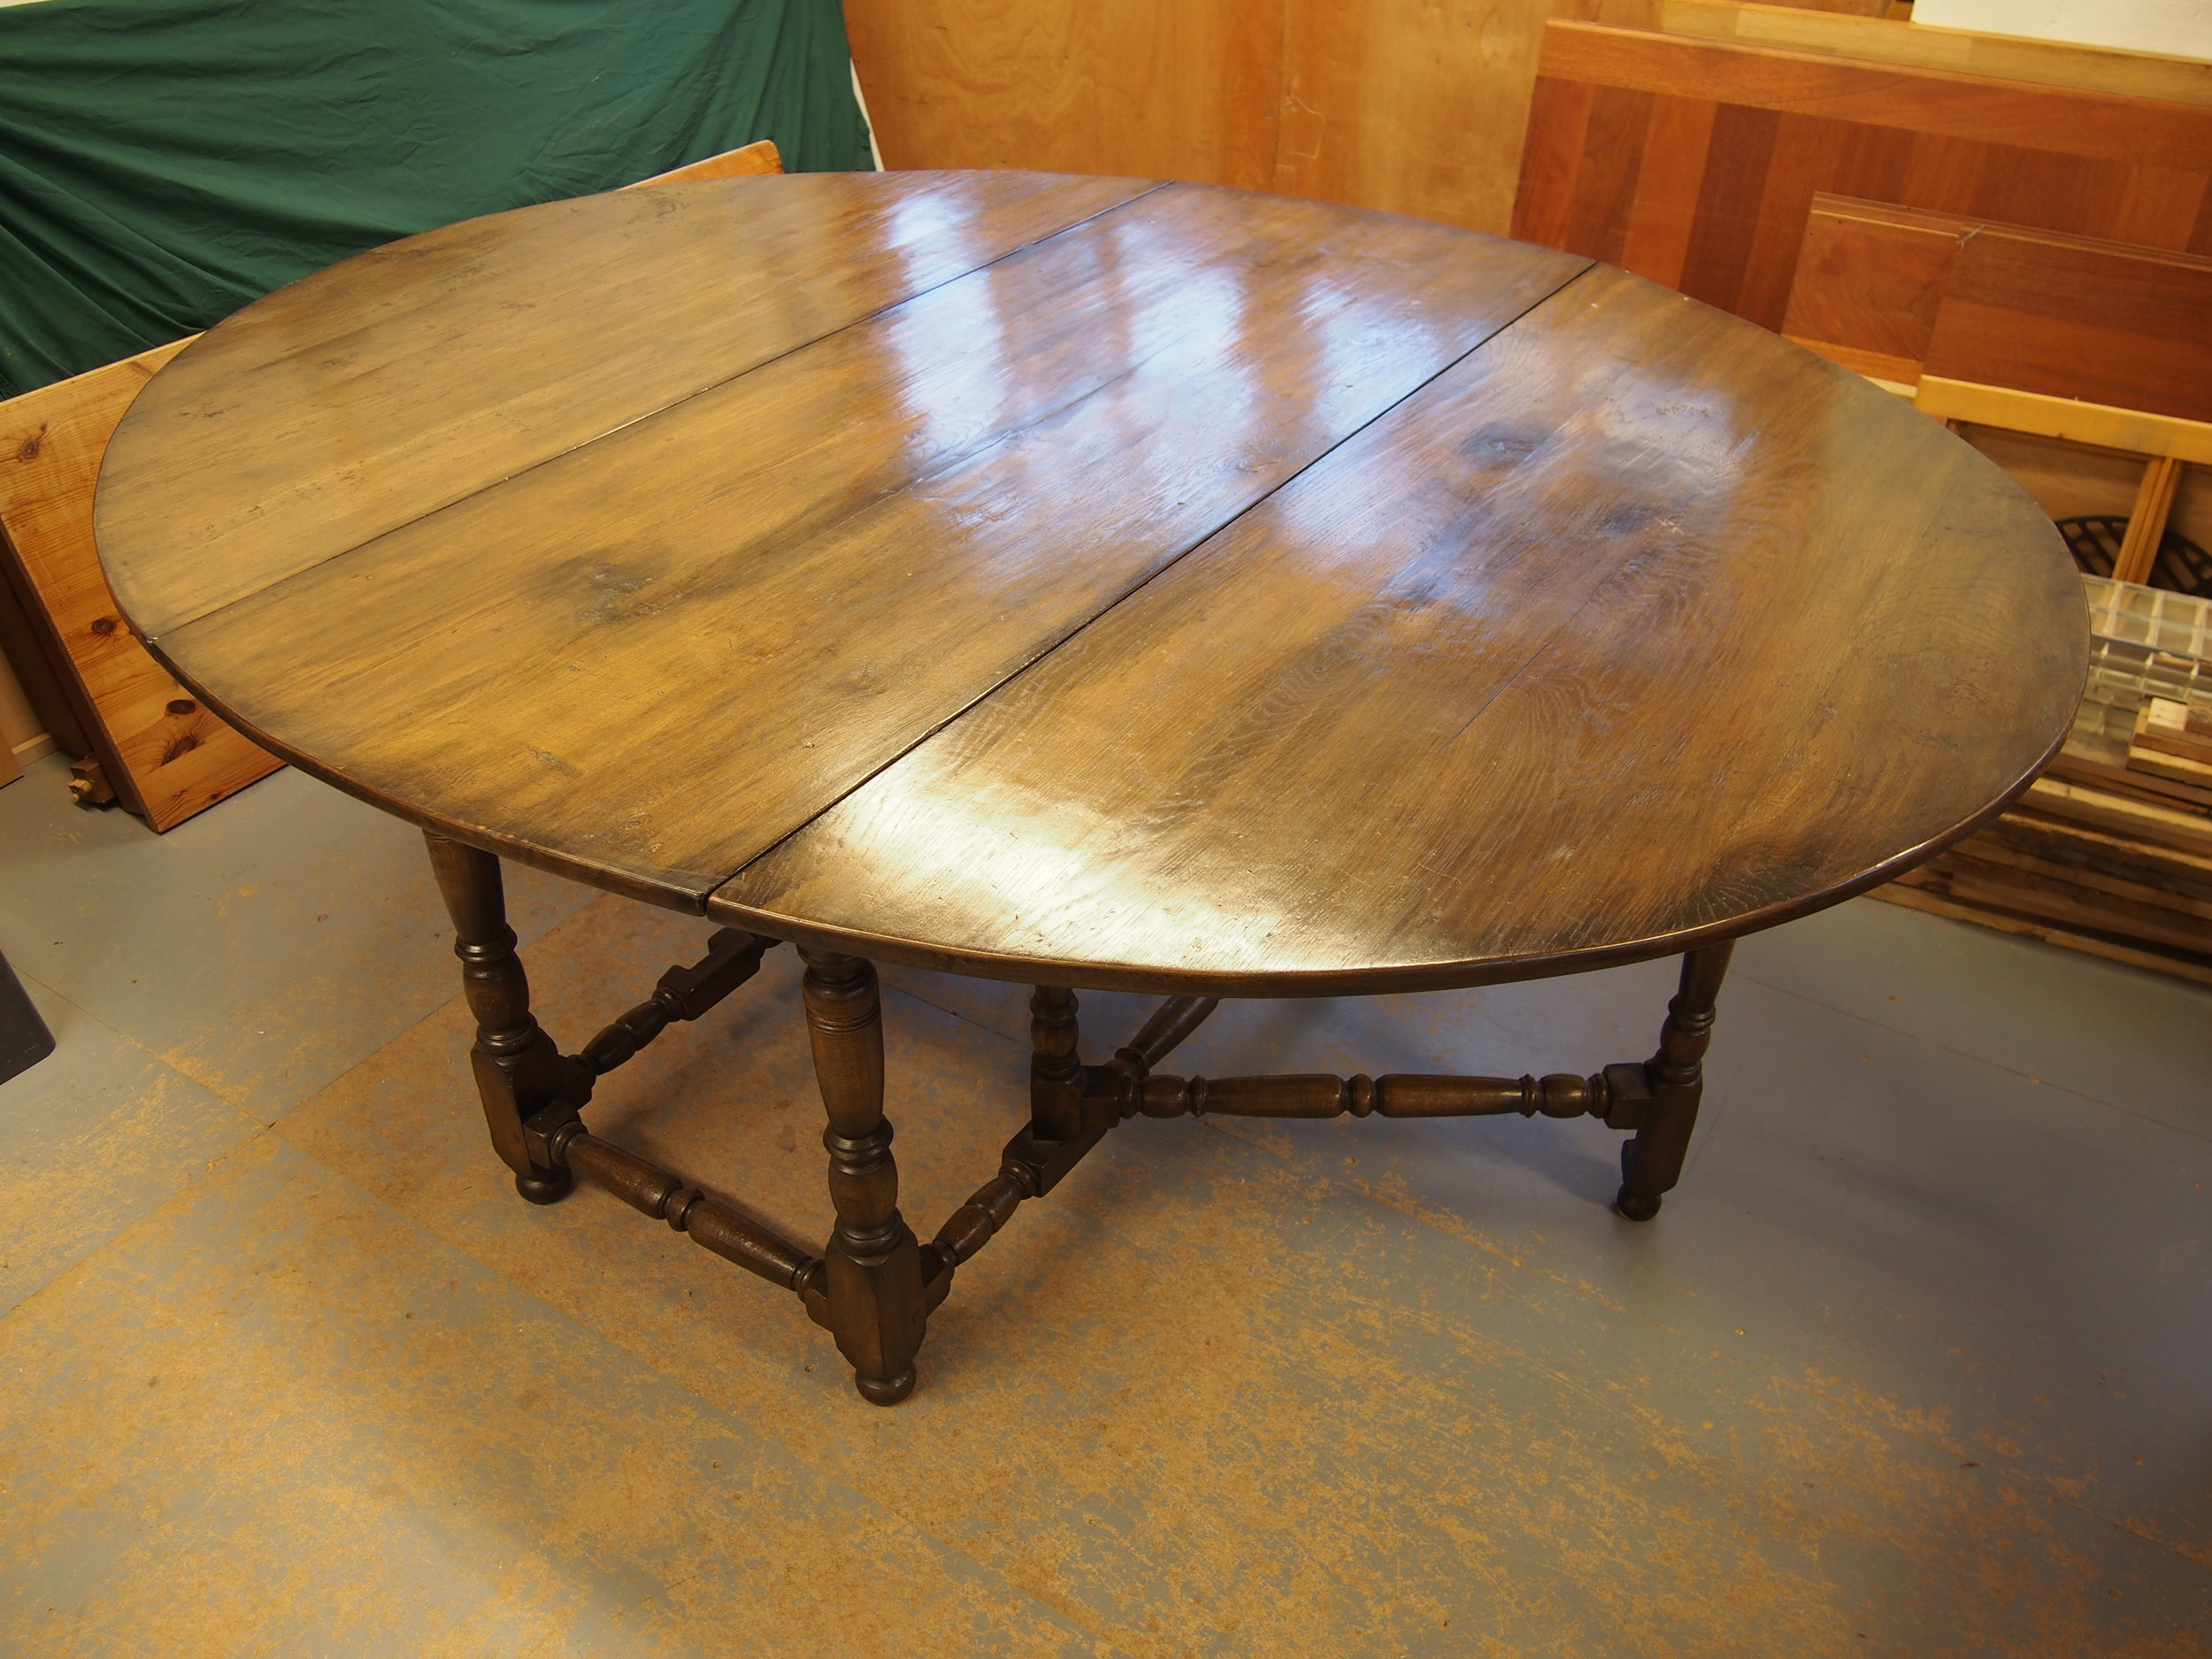 The Oak Drop Leaf table when opened had taken up a lot of room in the clients dining room. The request was to cut the diameter of the table to a smaller size and to replicate the newly exposed edges to match the original edges of the table.